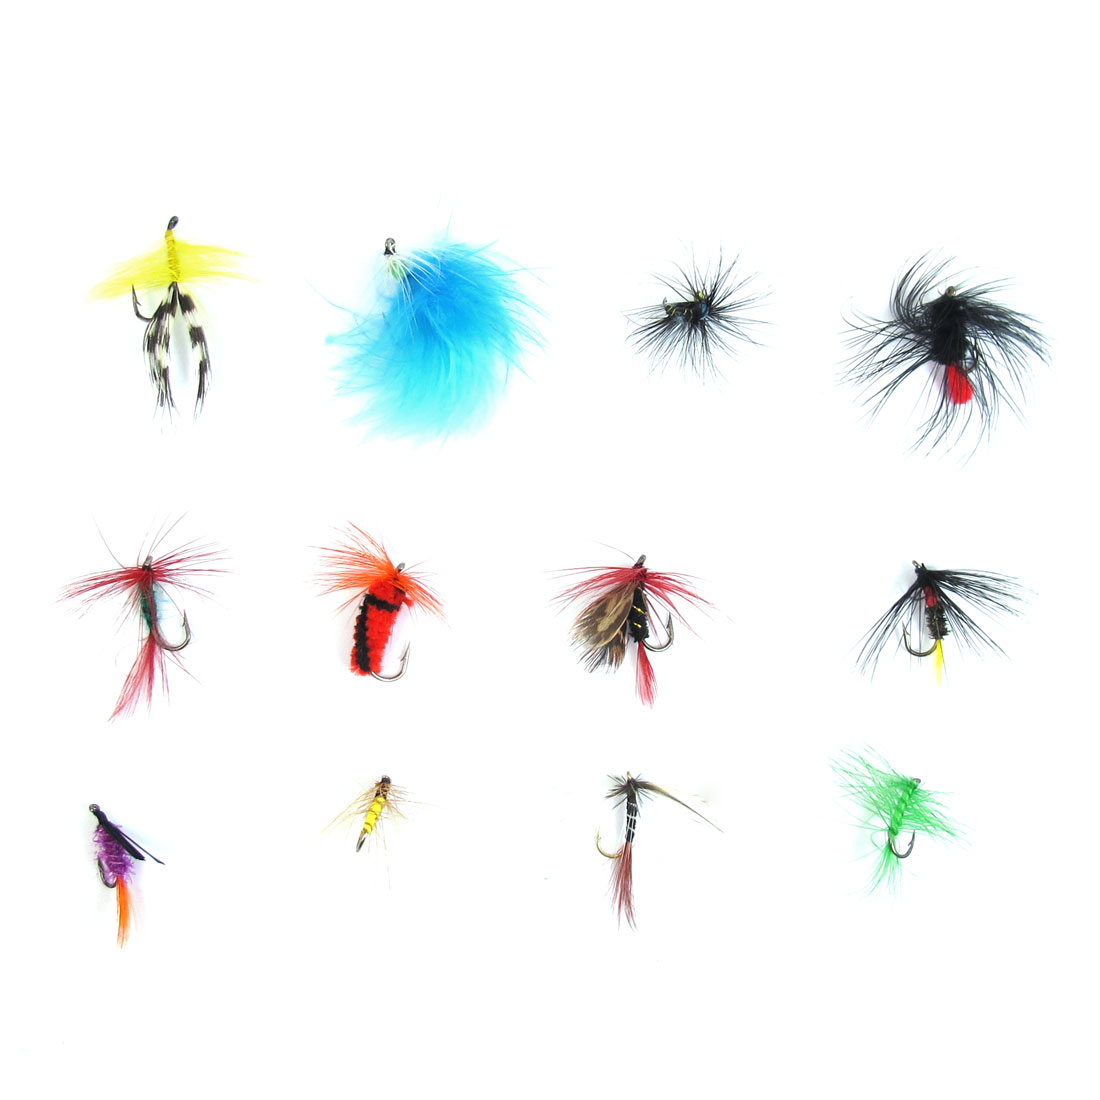 Unique Bargains 12 x Freshwater Lake Colorful Metal Fishing Hook Hair Lure by